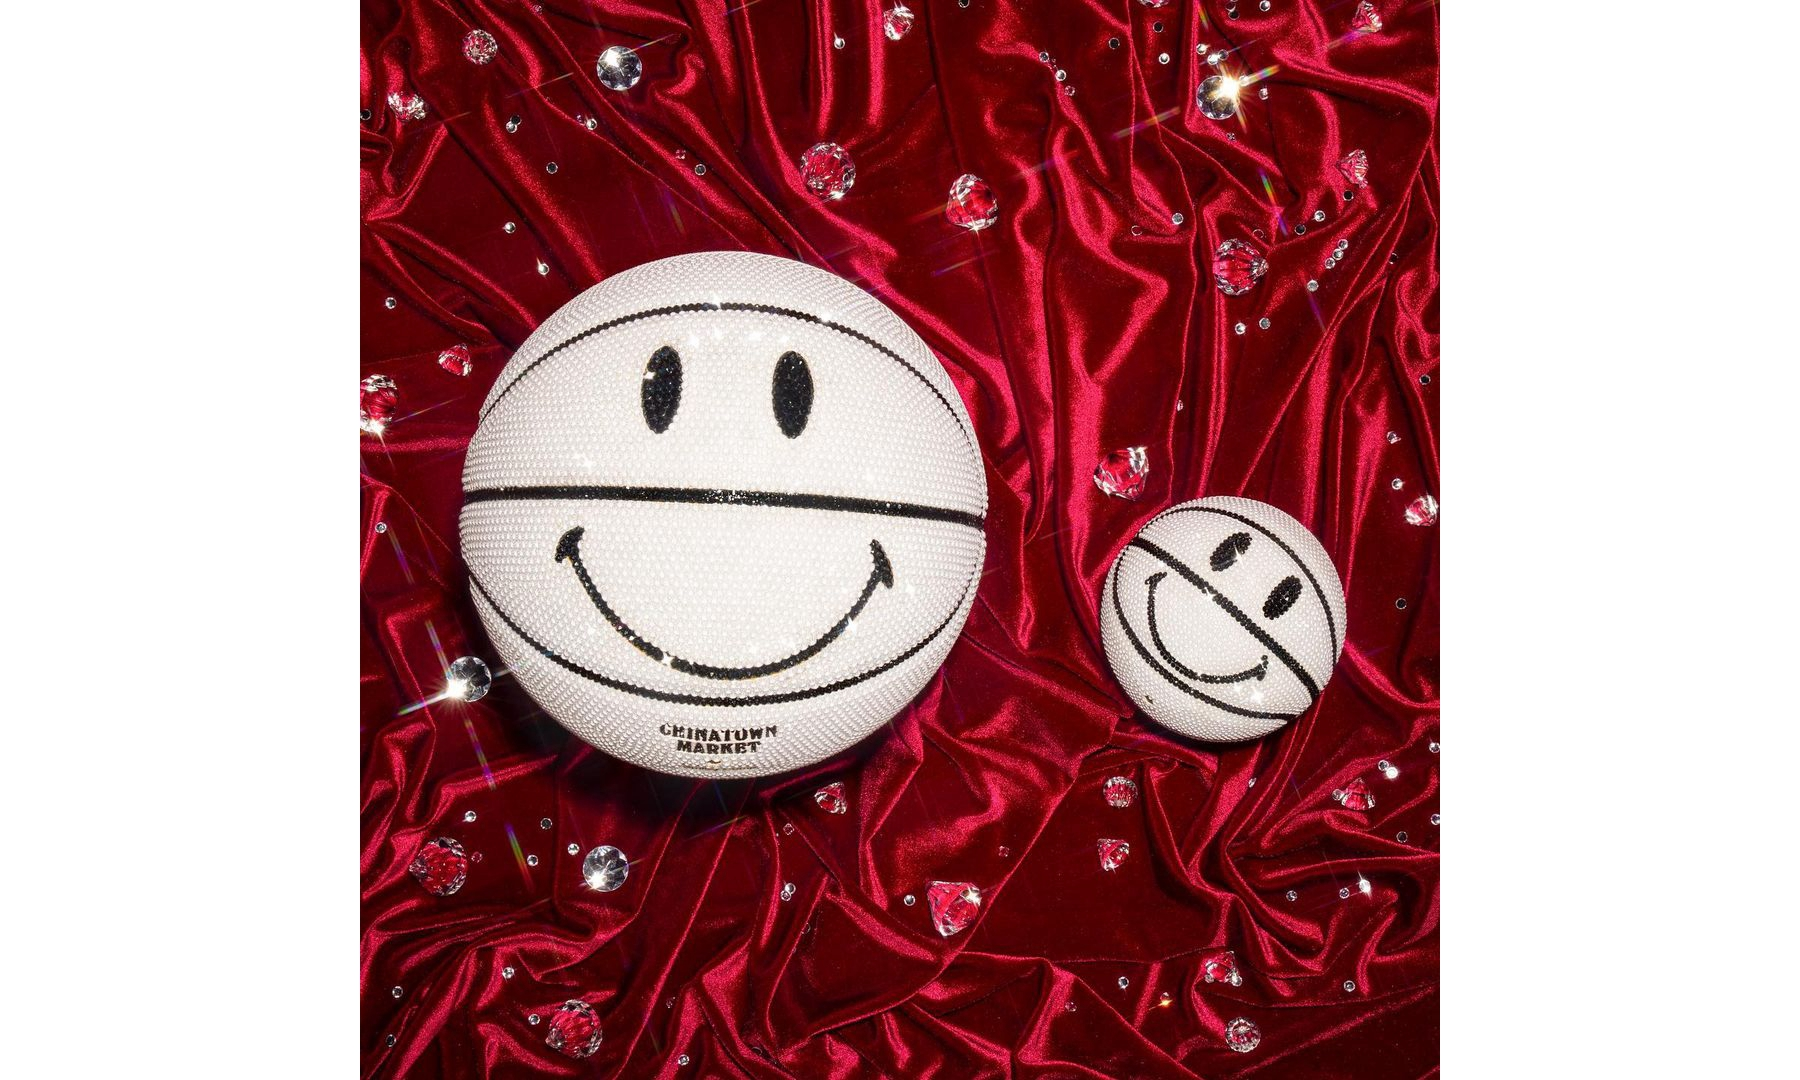 Swarovski x CHINATOWN MARKET 合作款 Smiley Basketball 登场